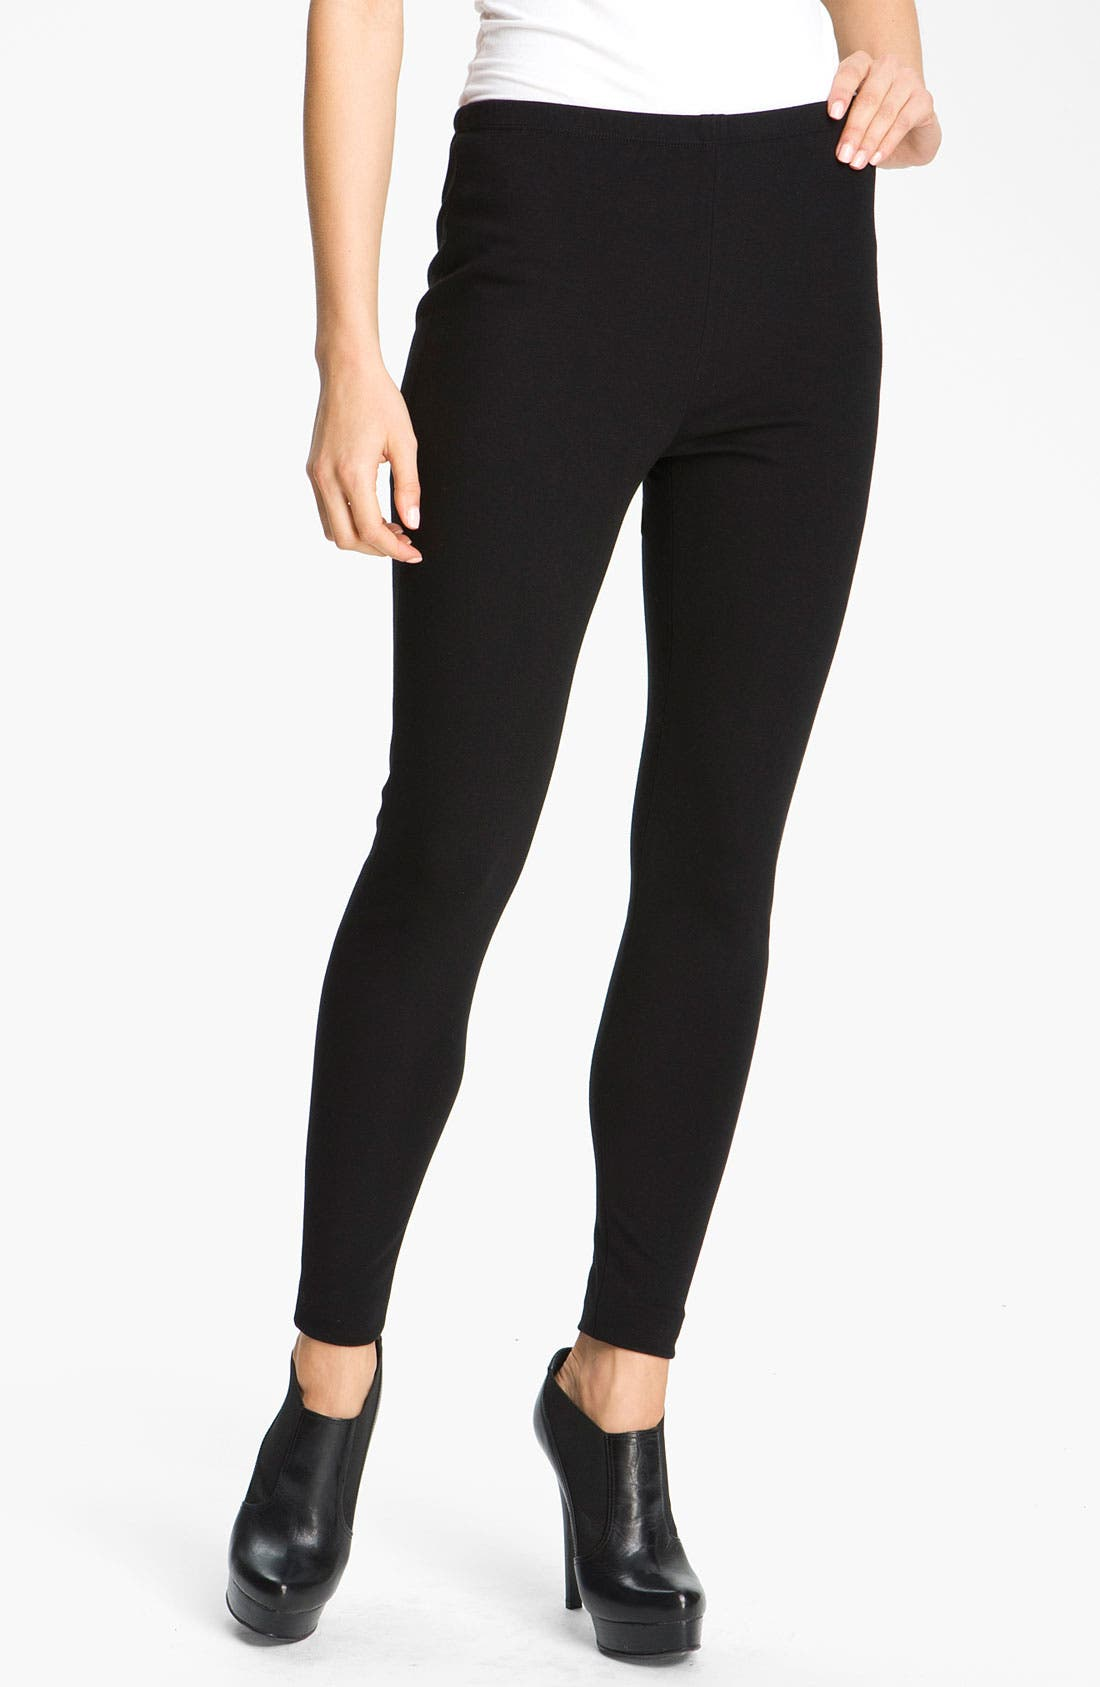 Alternate Image 1 Selected - Lafayette 148 New York Punto Milano Knit Leggings